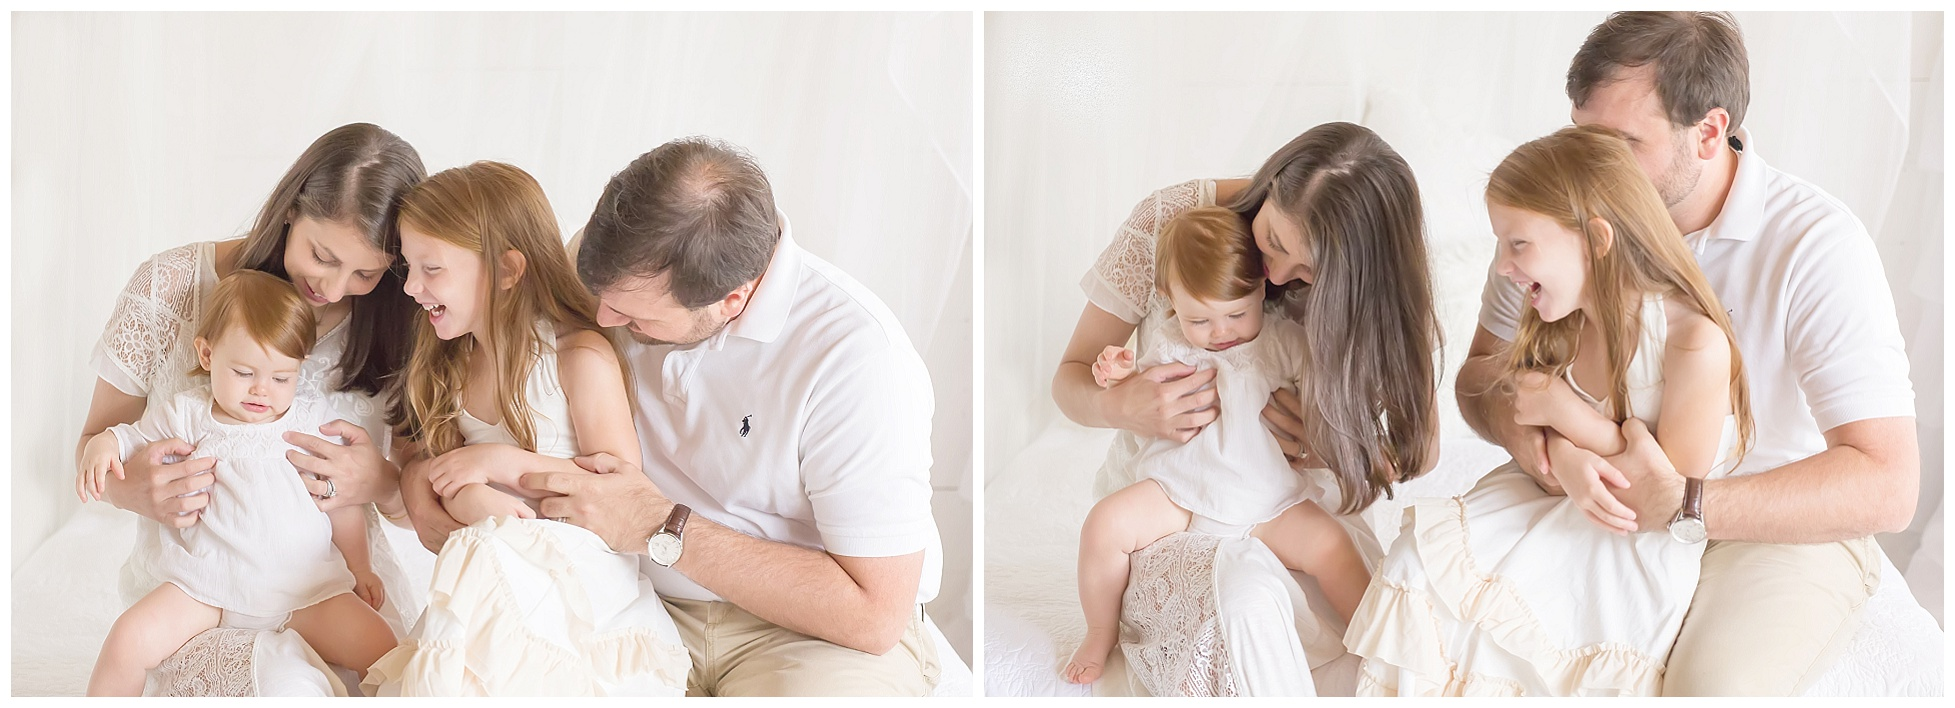 candace hires photography | st simons island family and newborn photographer